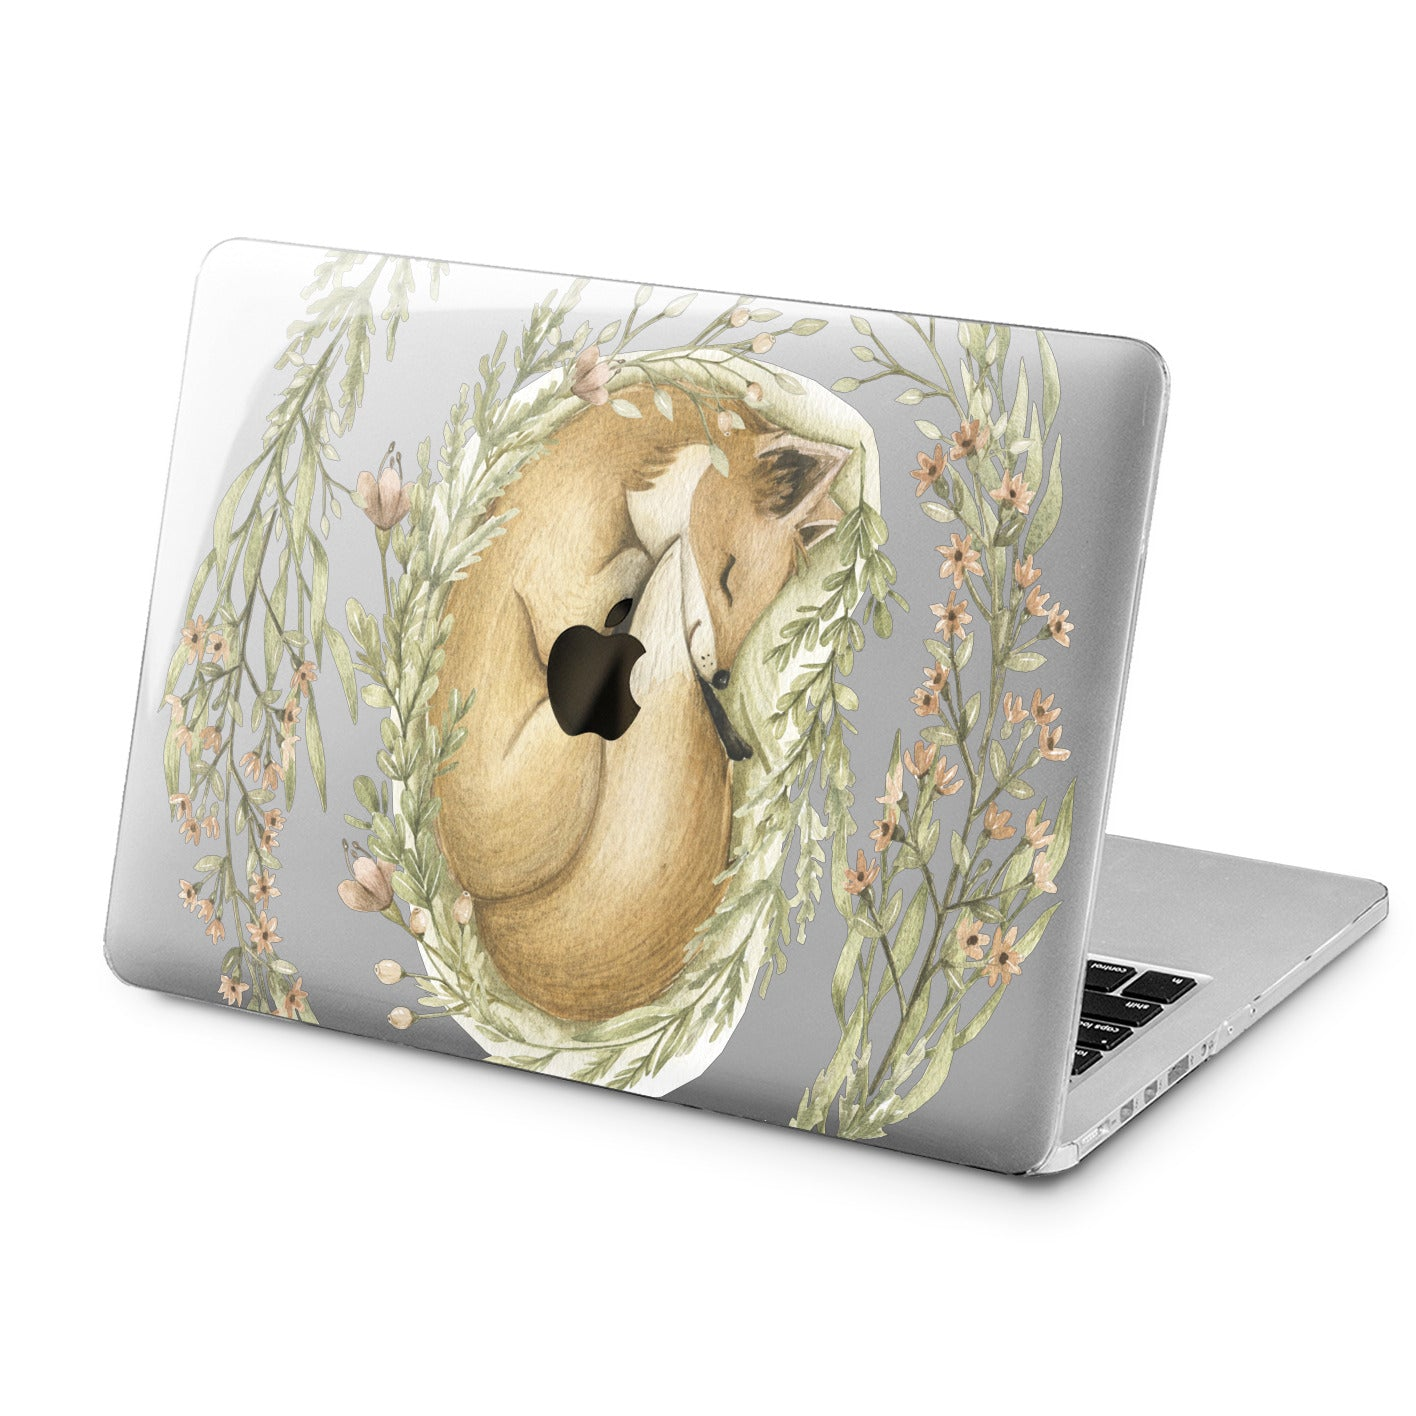 Lex Altern Cute Fox Design Case for your Laptop Apple Macbook.